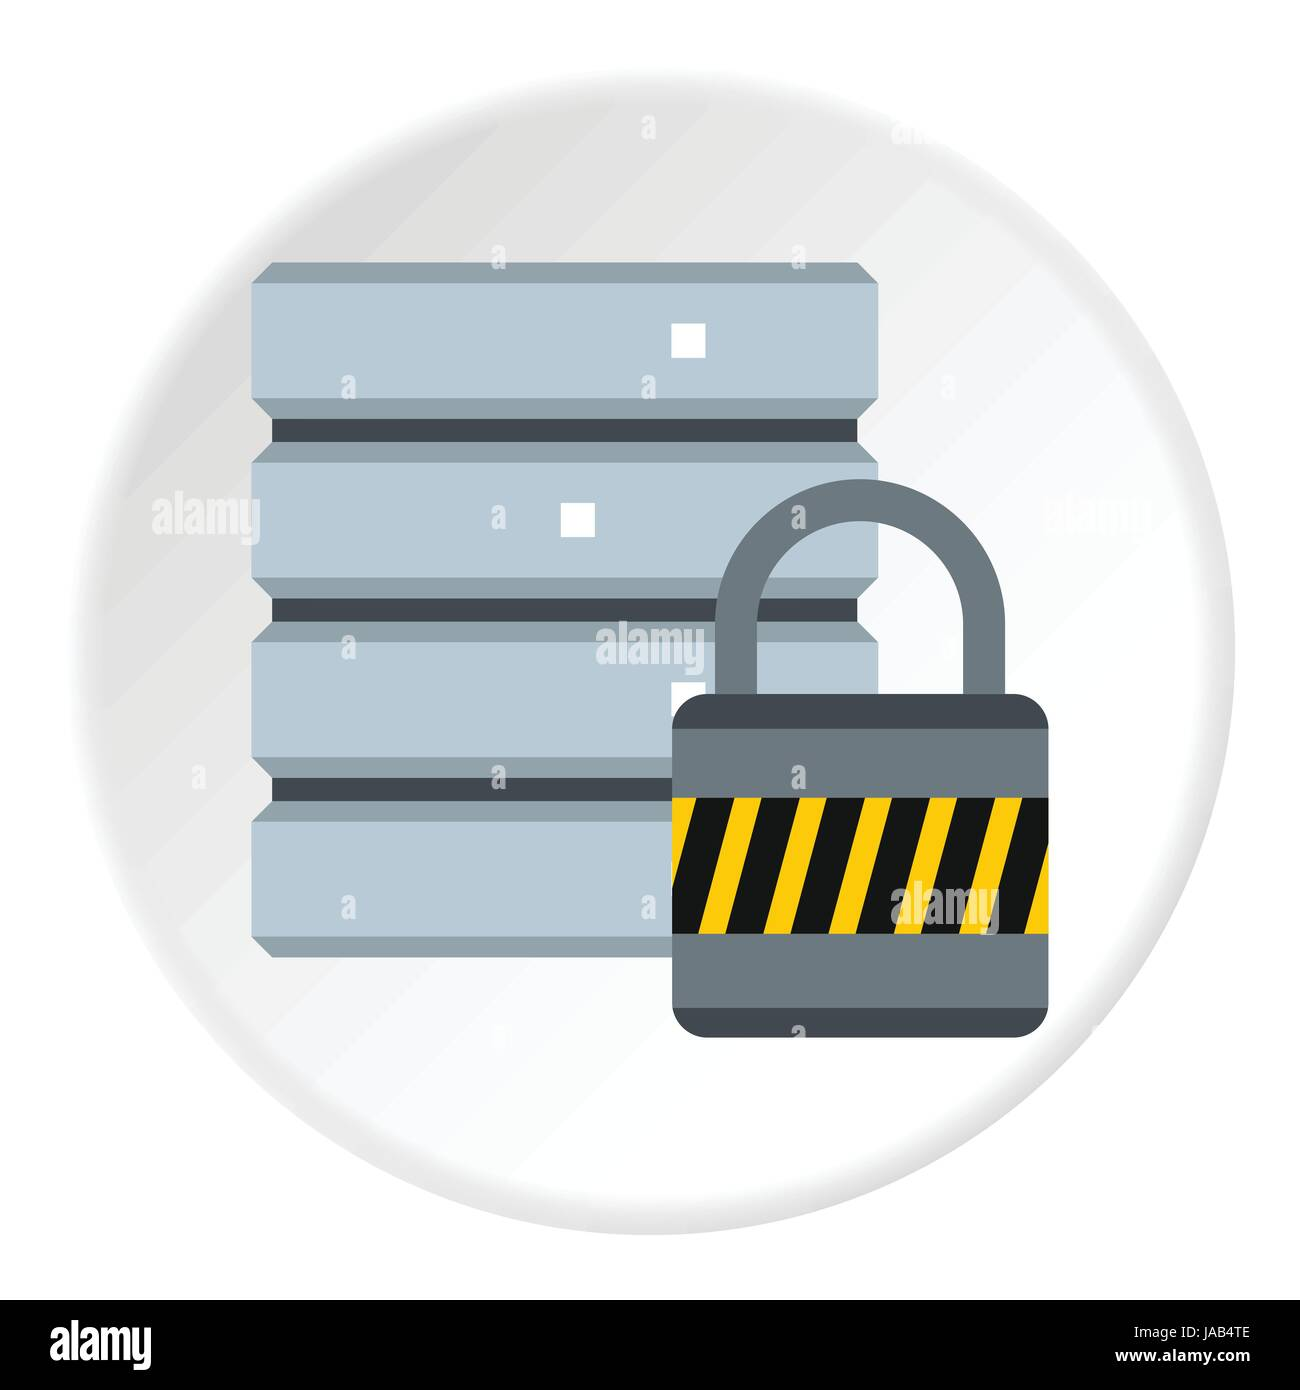 Data protection icon. Flat illustration of data protection vector icon for web - Stock Image